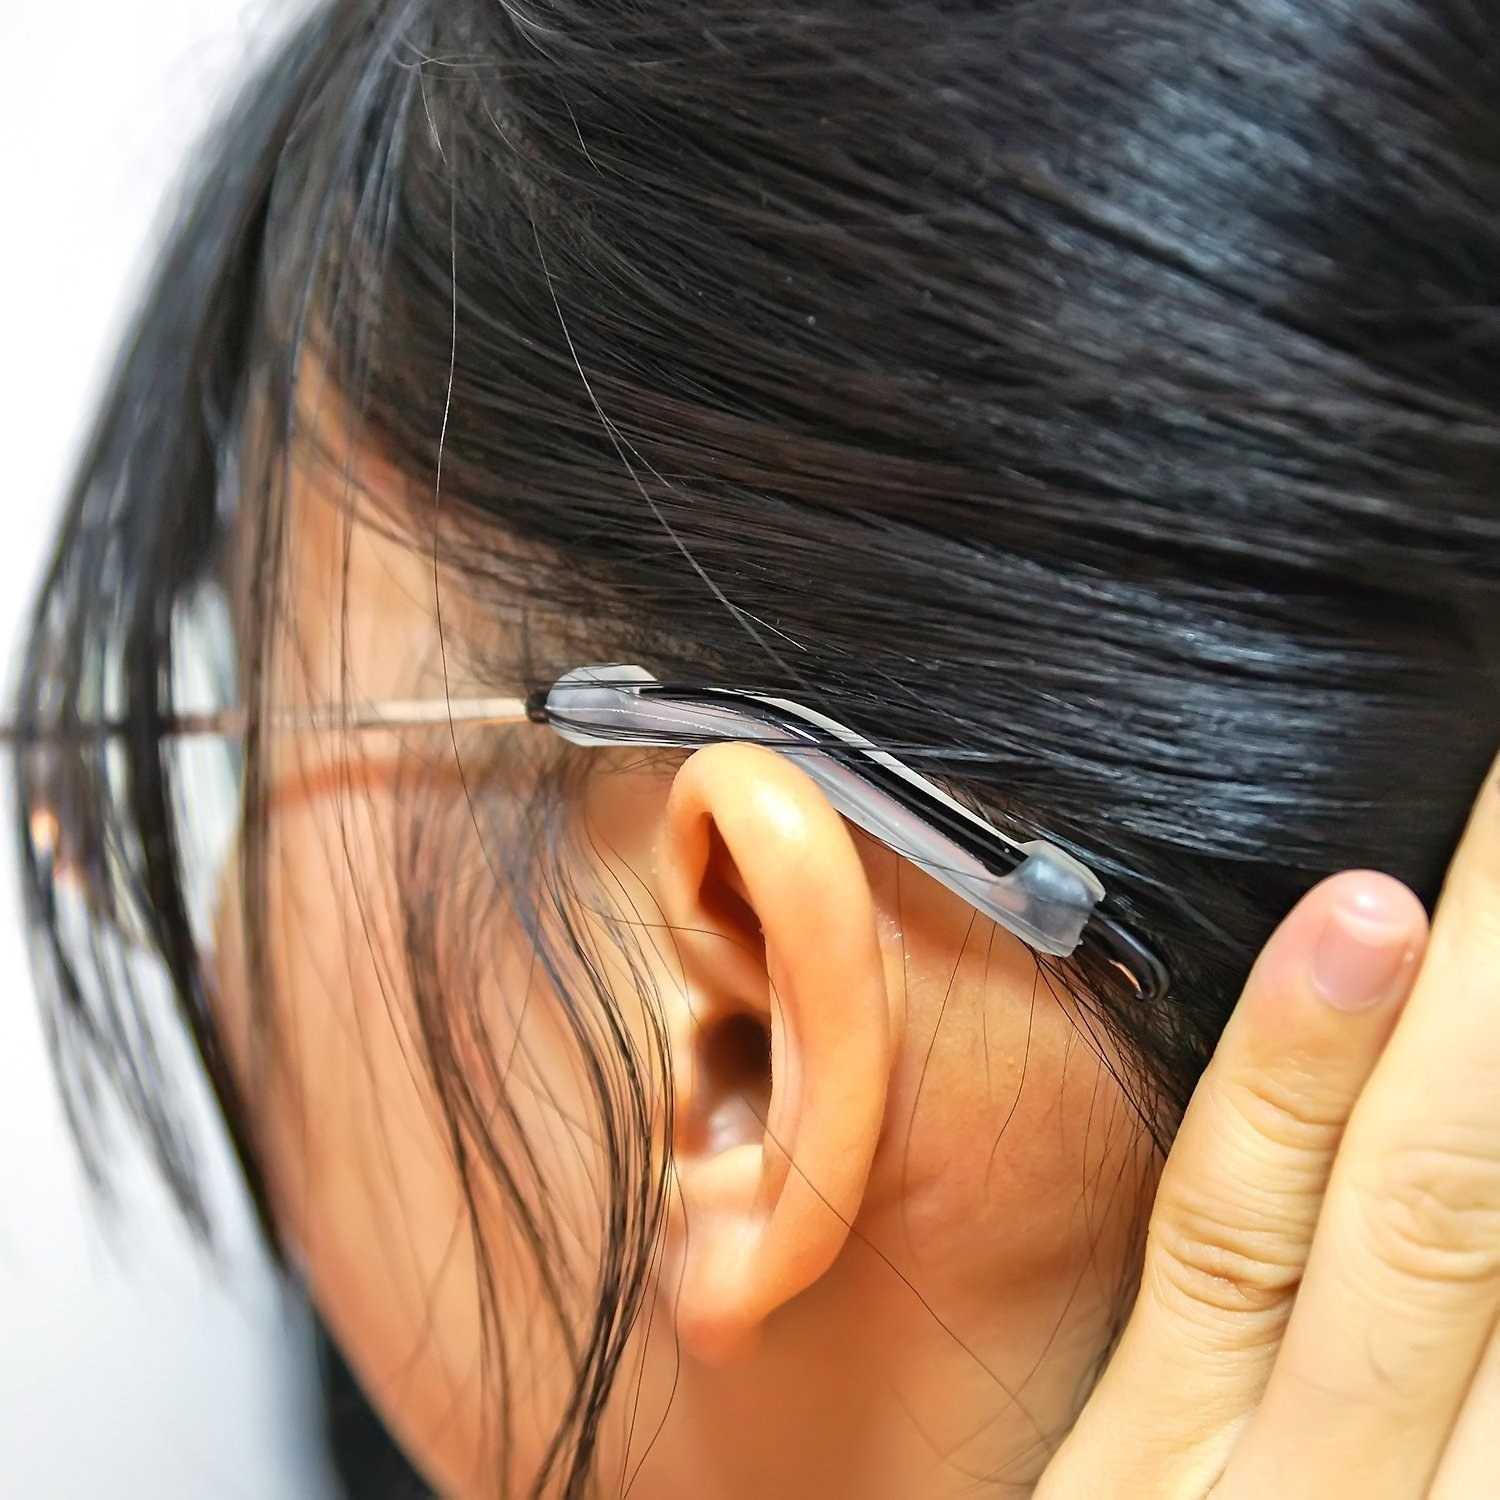 A model showing the glasses resting with the silicone cover on the back of their ear